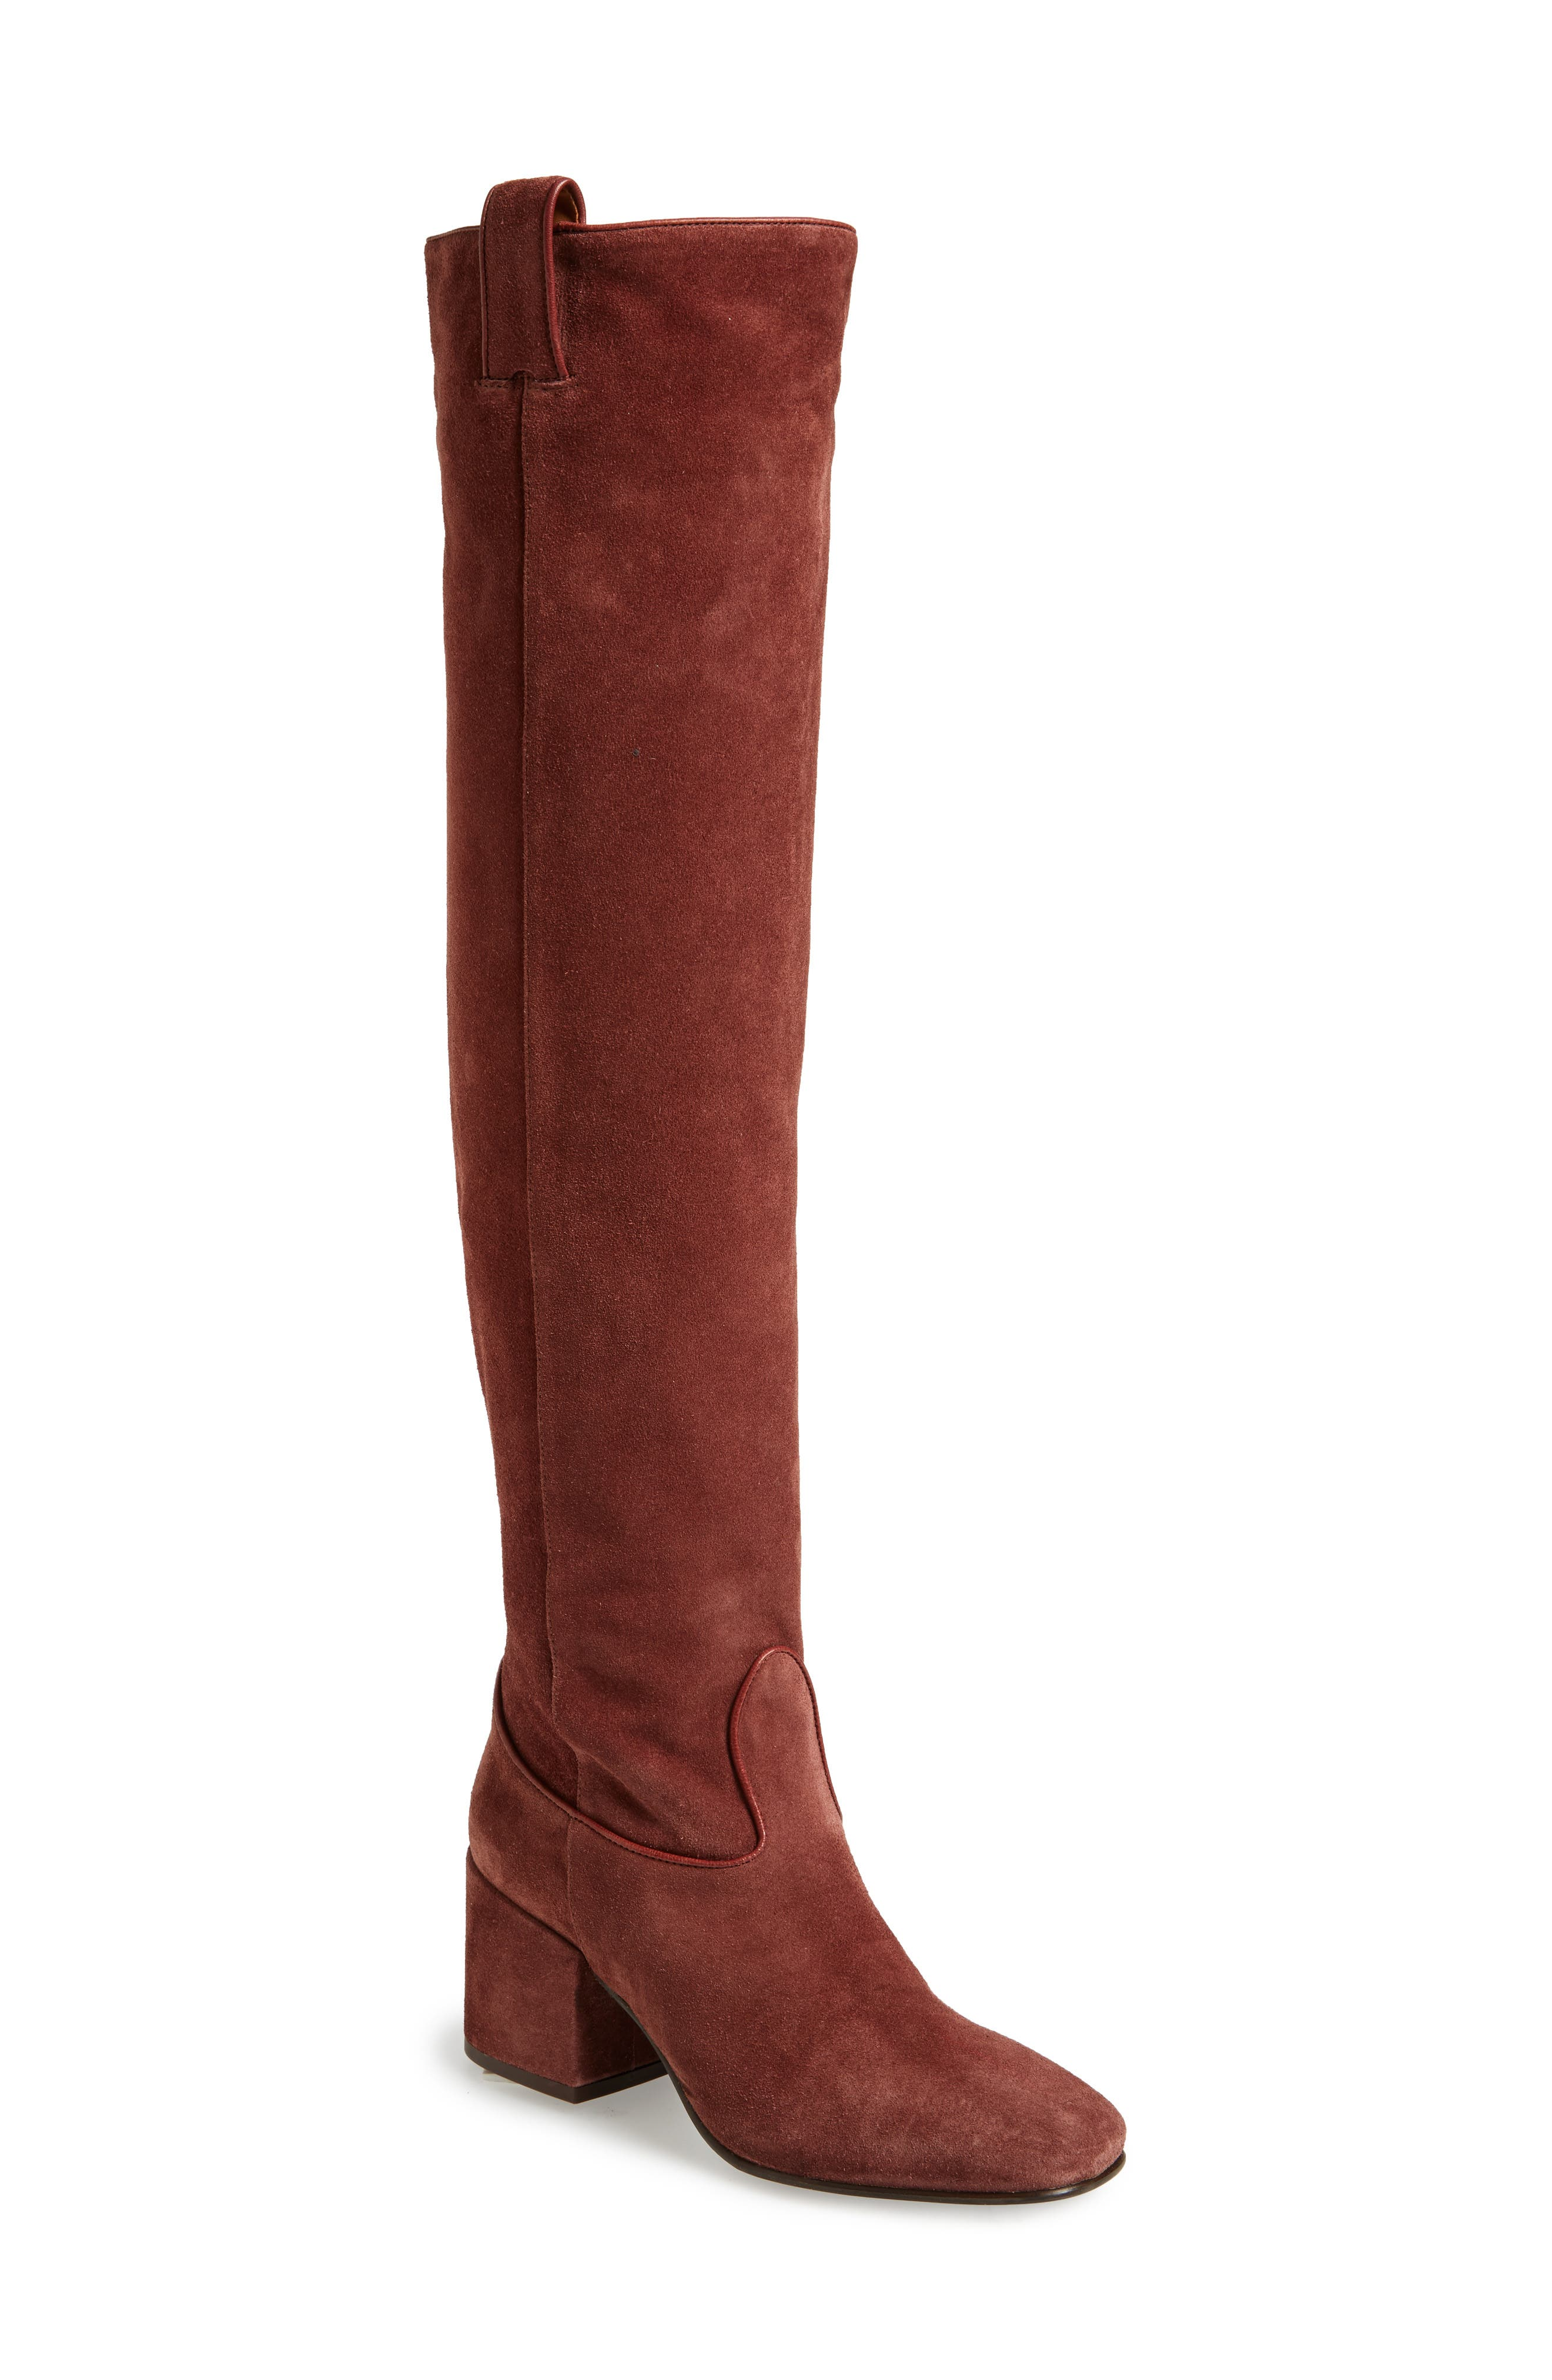 Delia Over the Knee Boot,                             Main thumbnail 1, color,                             930